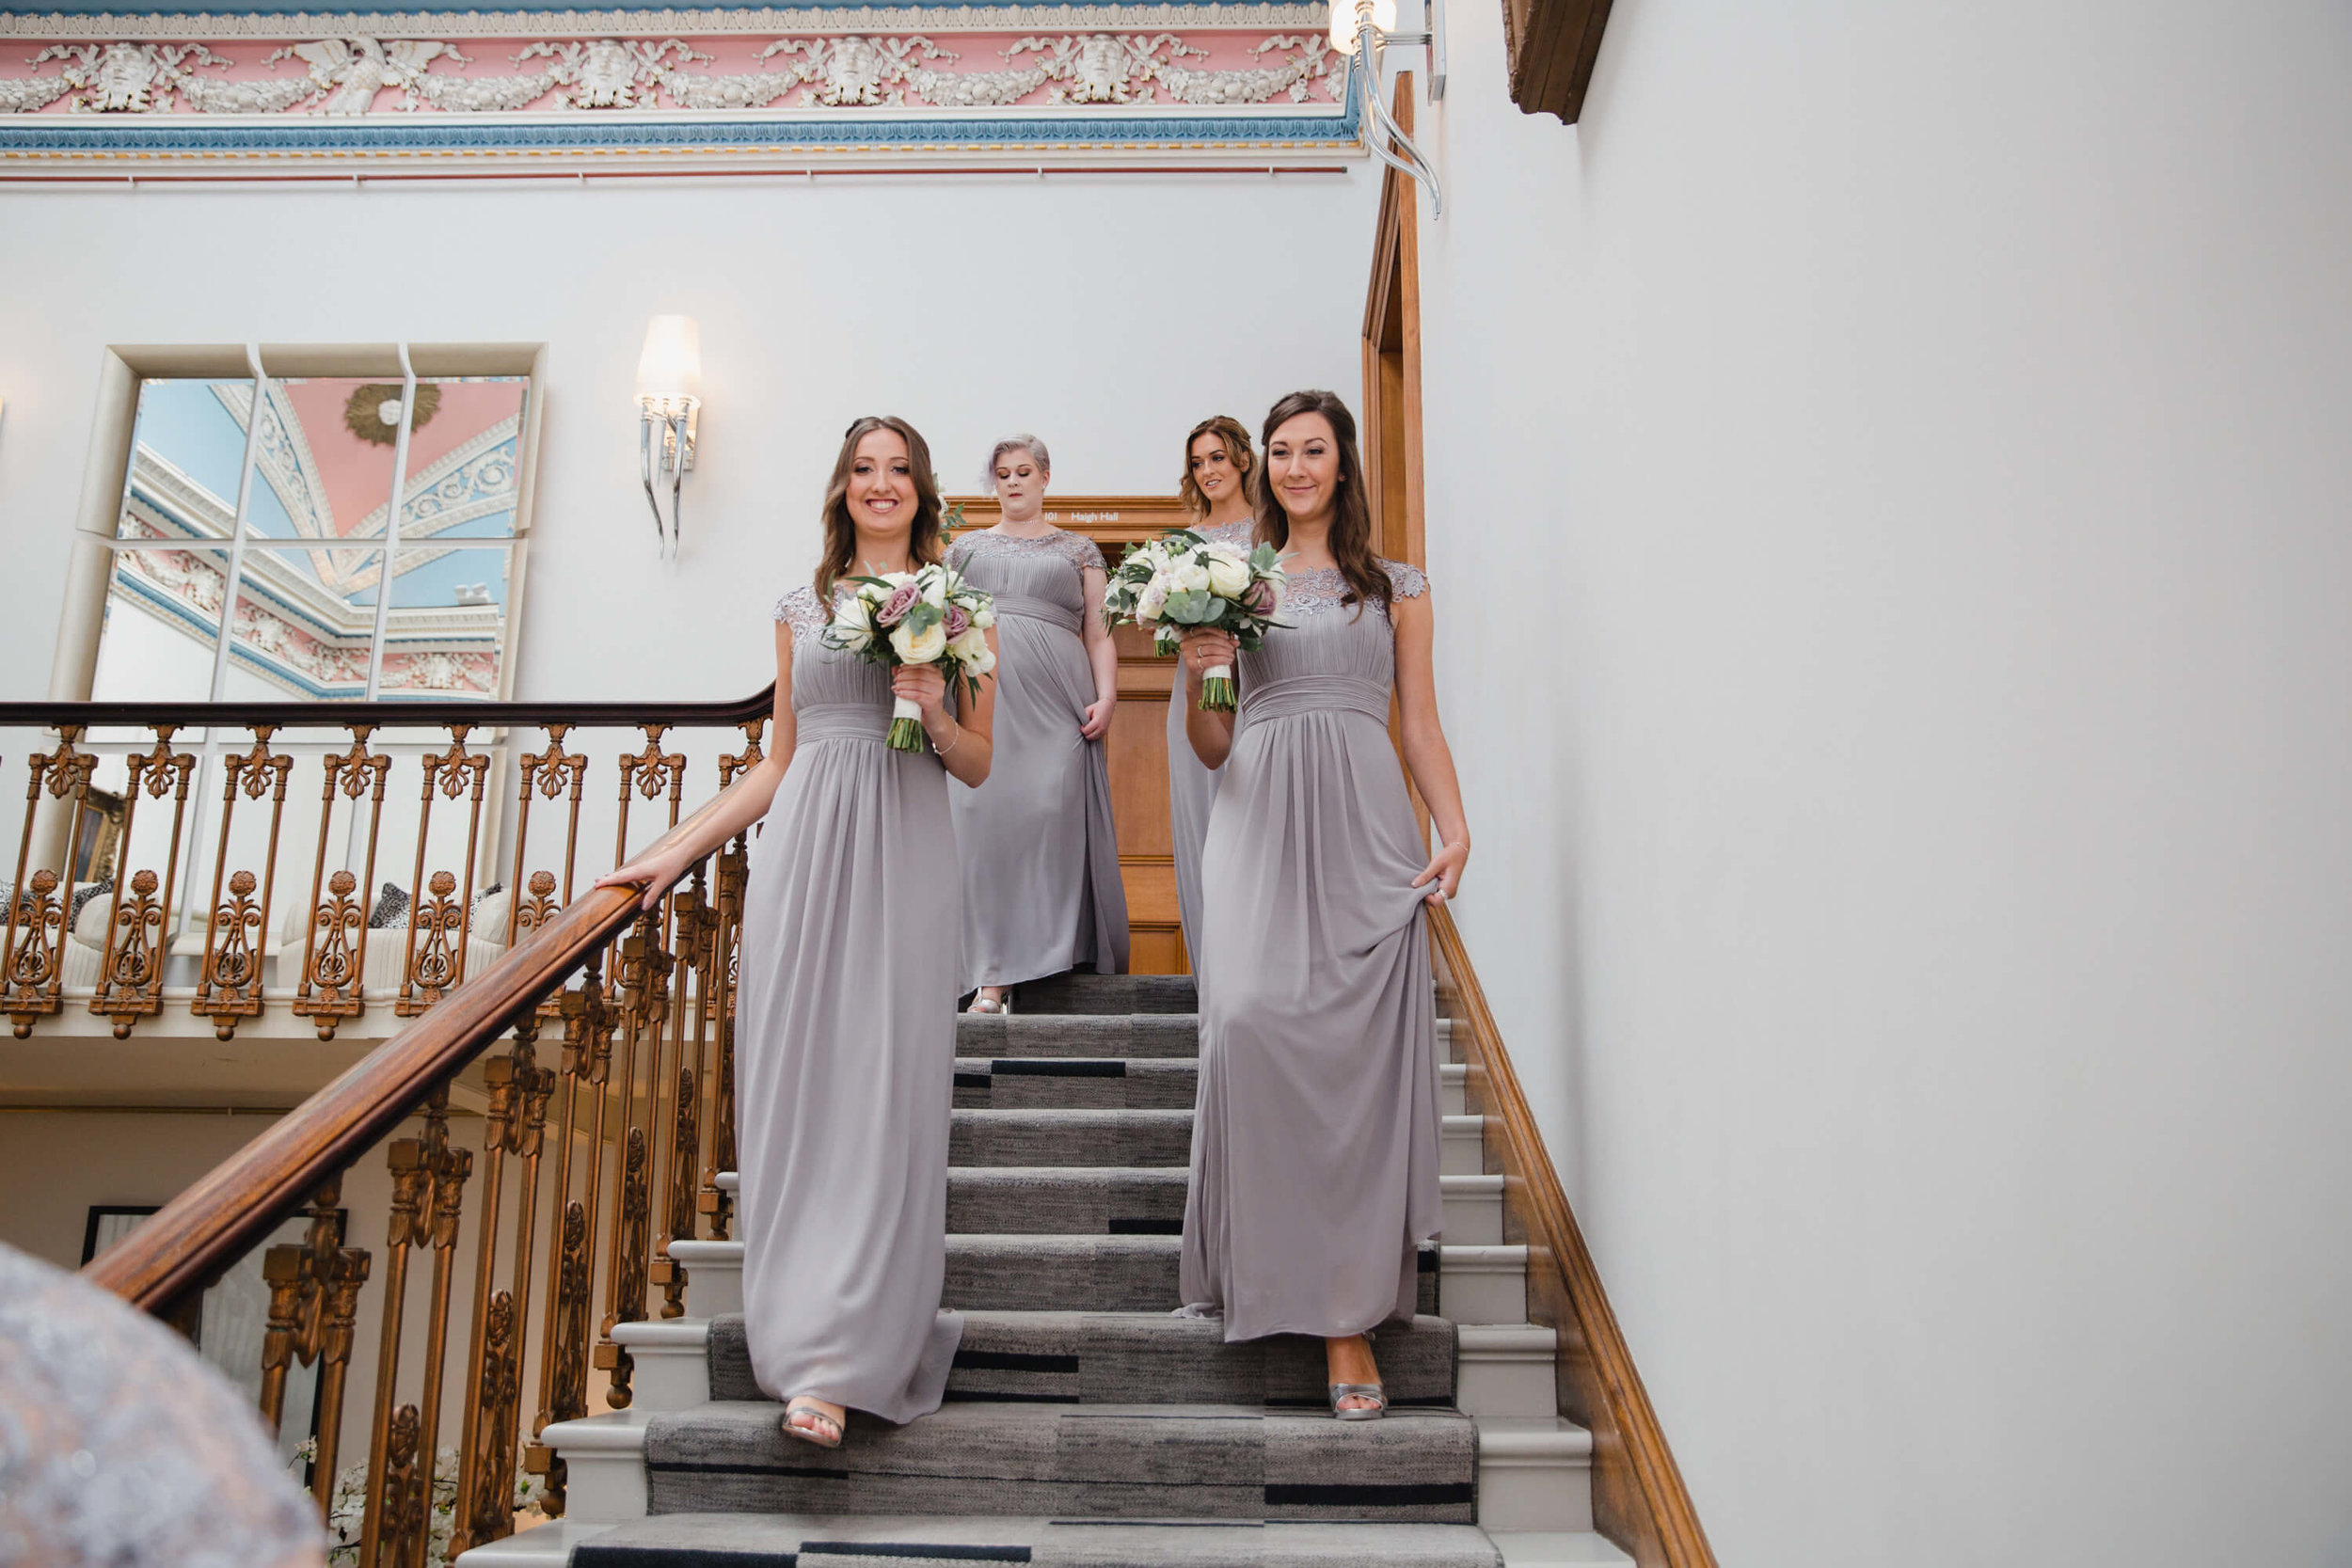 bridesmaids holding bouquets walking down staircase on way to ceremony